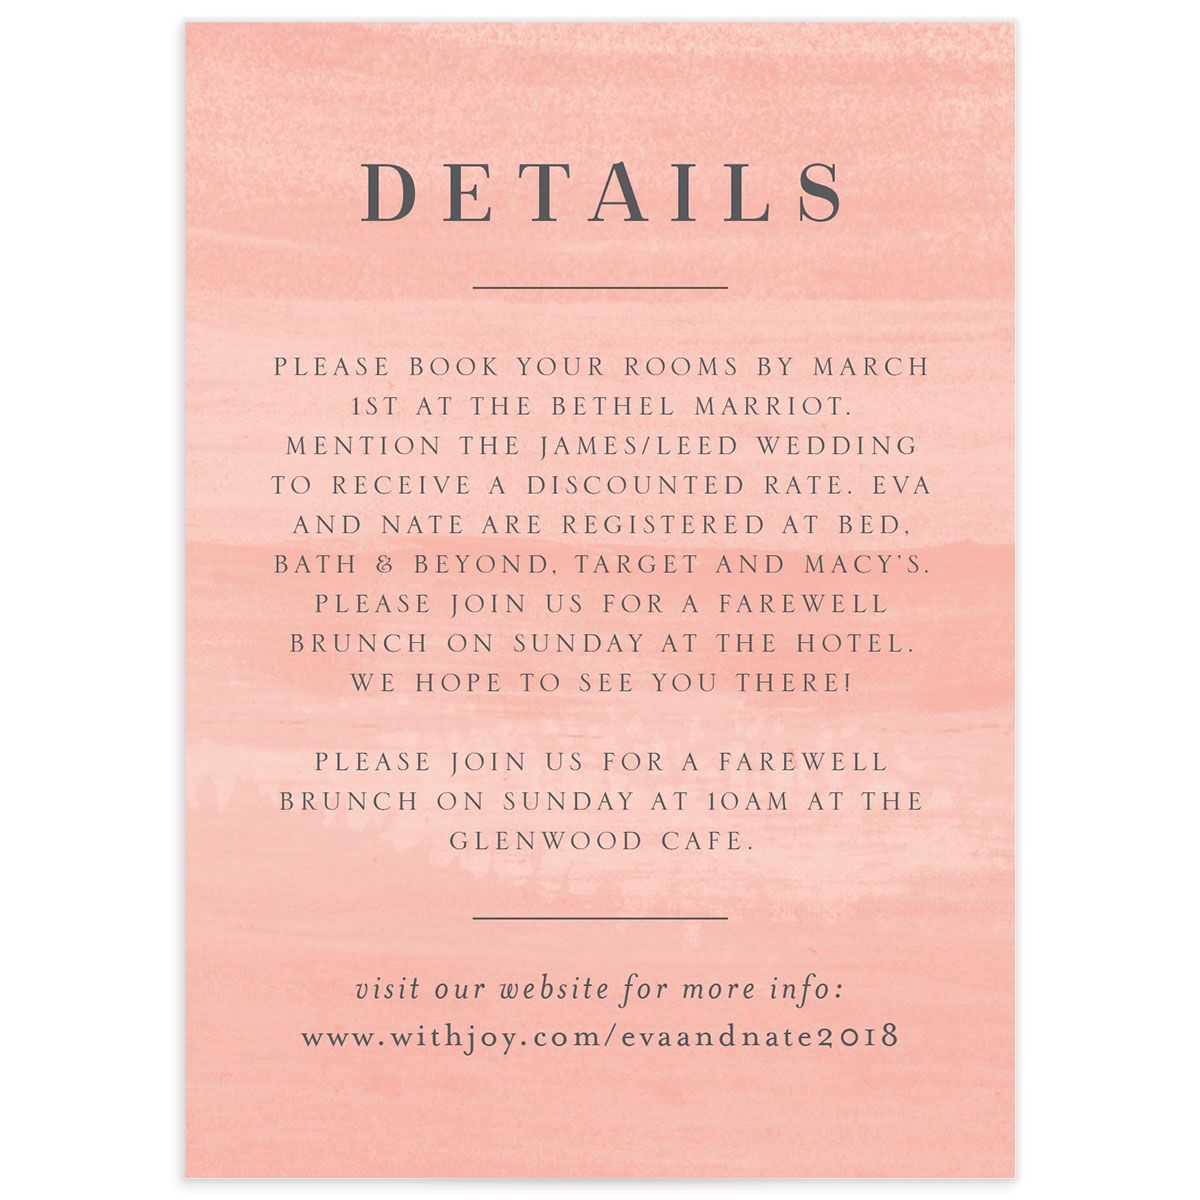 wild wreath wedding details card in pink